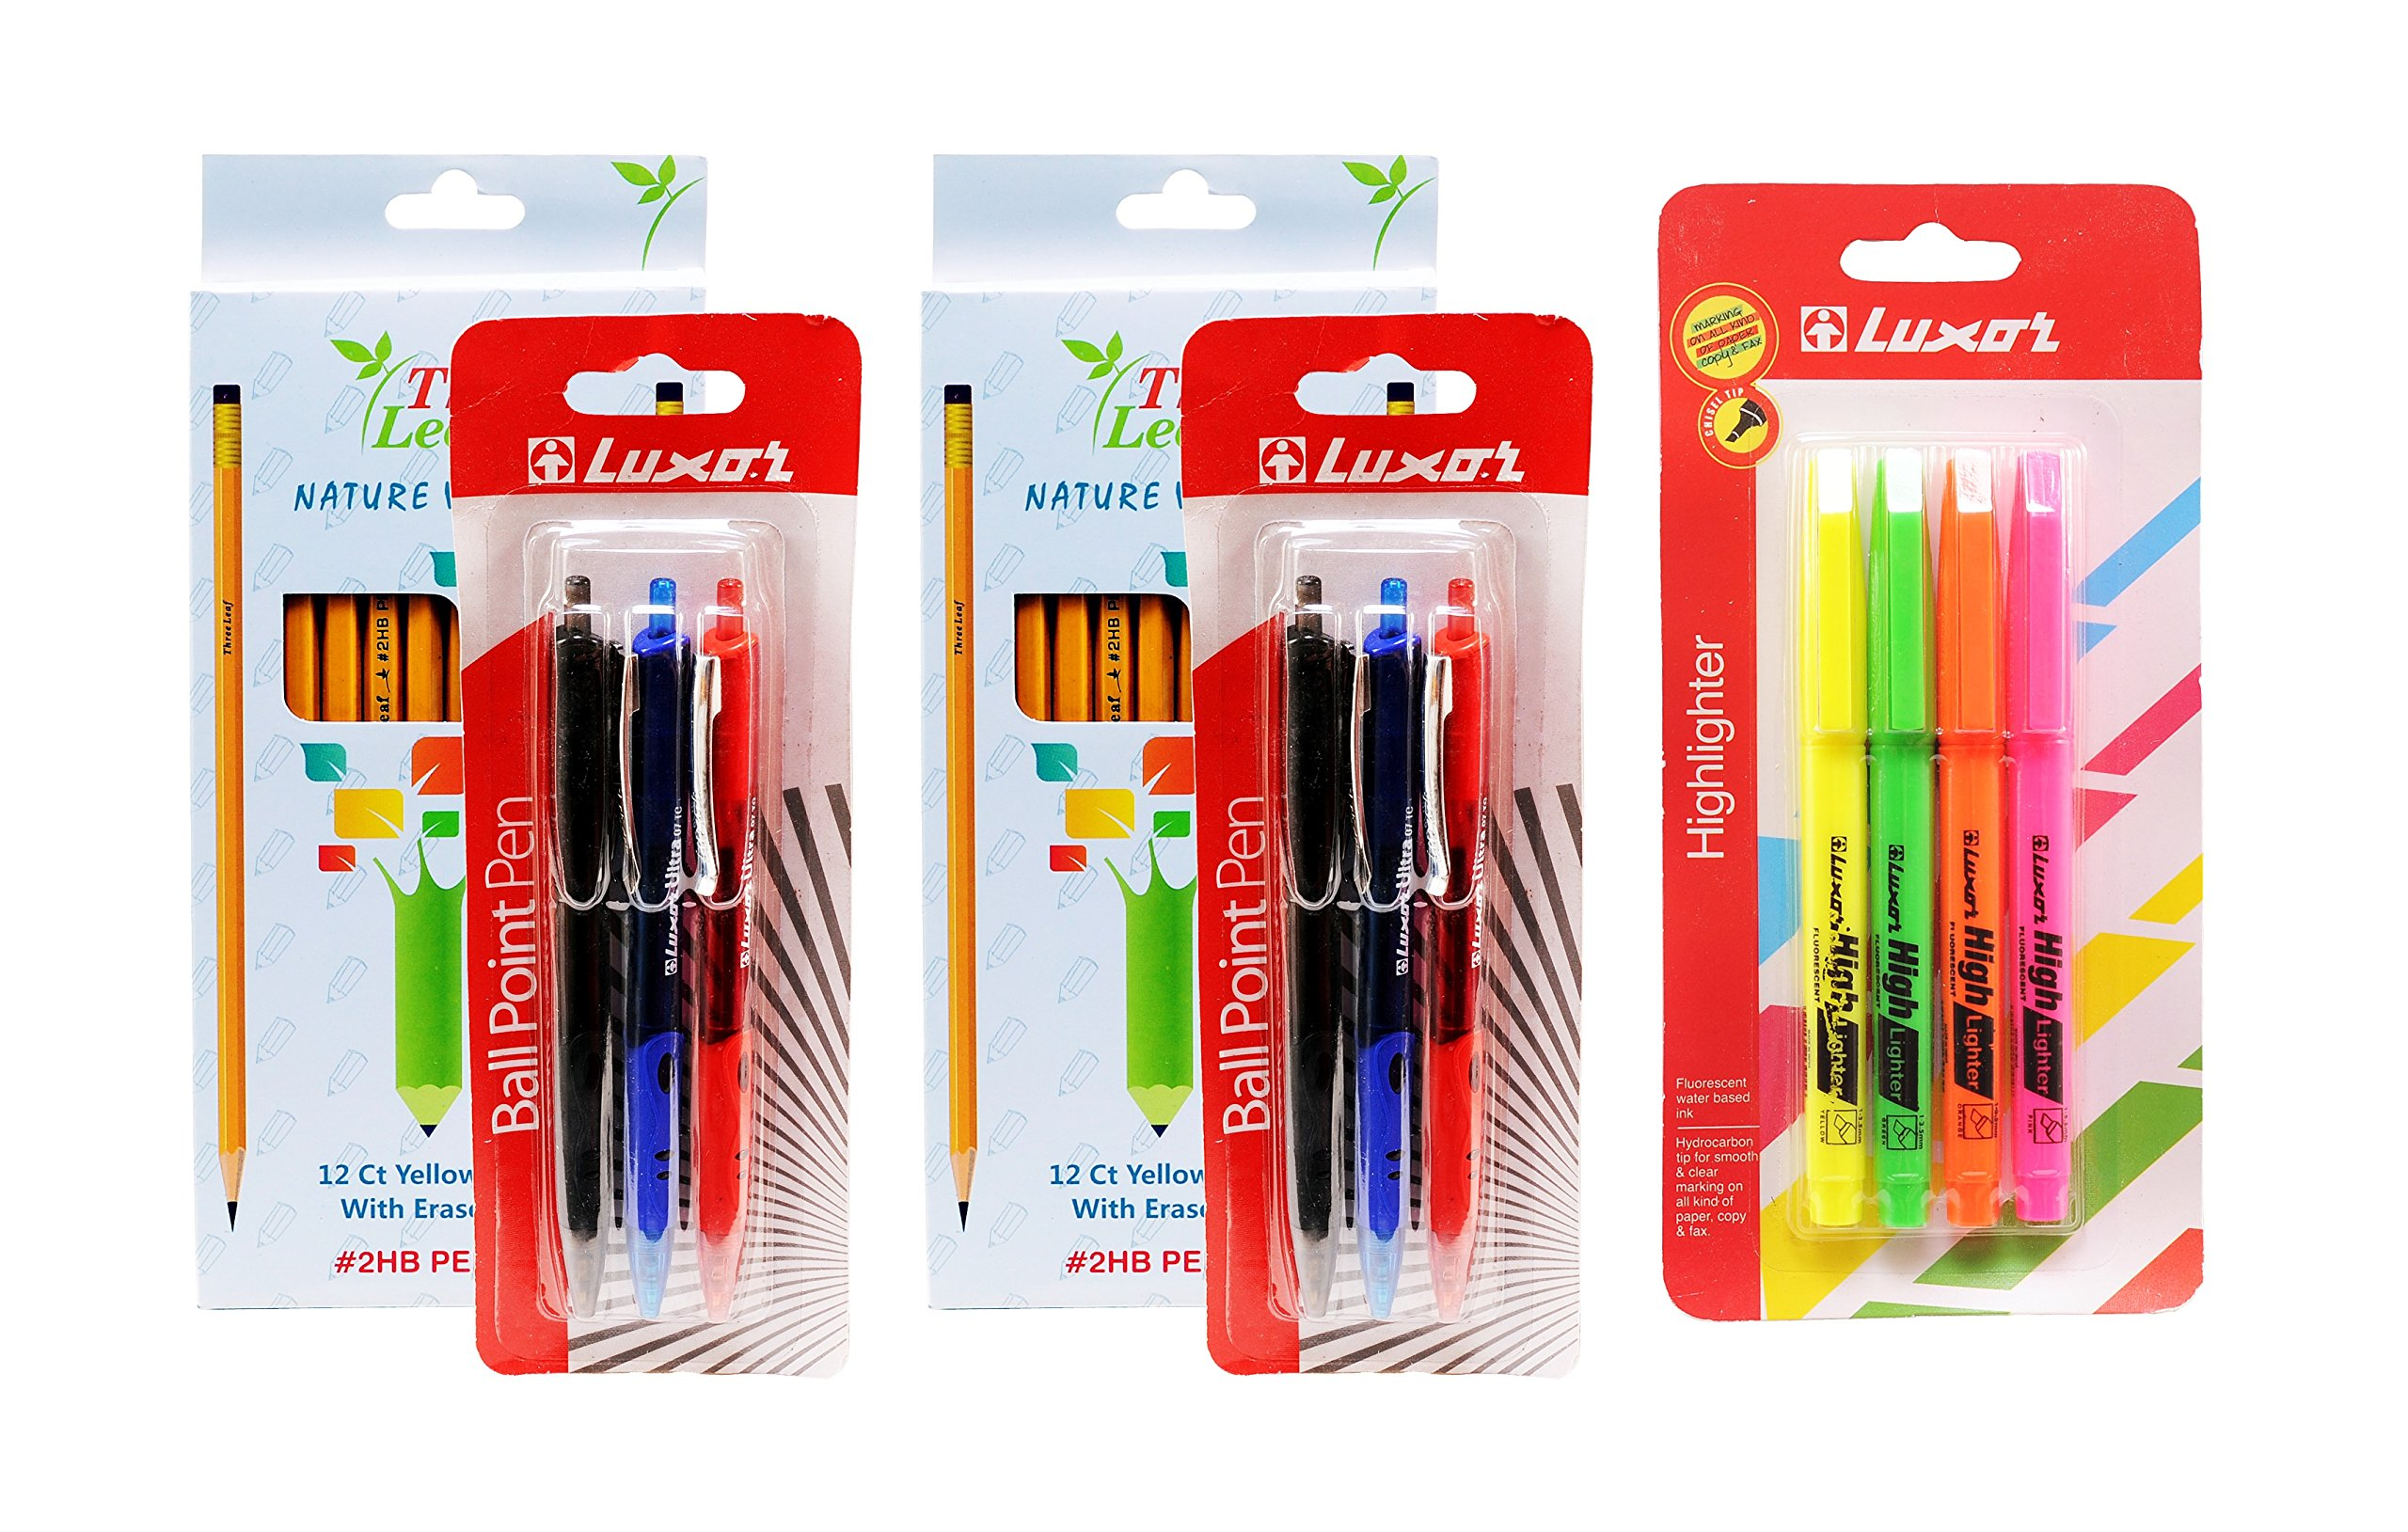 24-Pack Wood-Cased Pencils, #2 HB, Yellow, Eraser Tip, Super-Bonded Black Lead - 6-Pack Ballpoint Pens, Colors: Black, Blue, Red - 4-Pack Highlighters, Chisel Tip (24-Pencils, 6-Pens, 4-Highlighters)